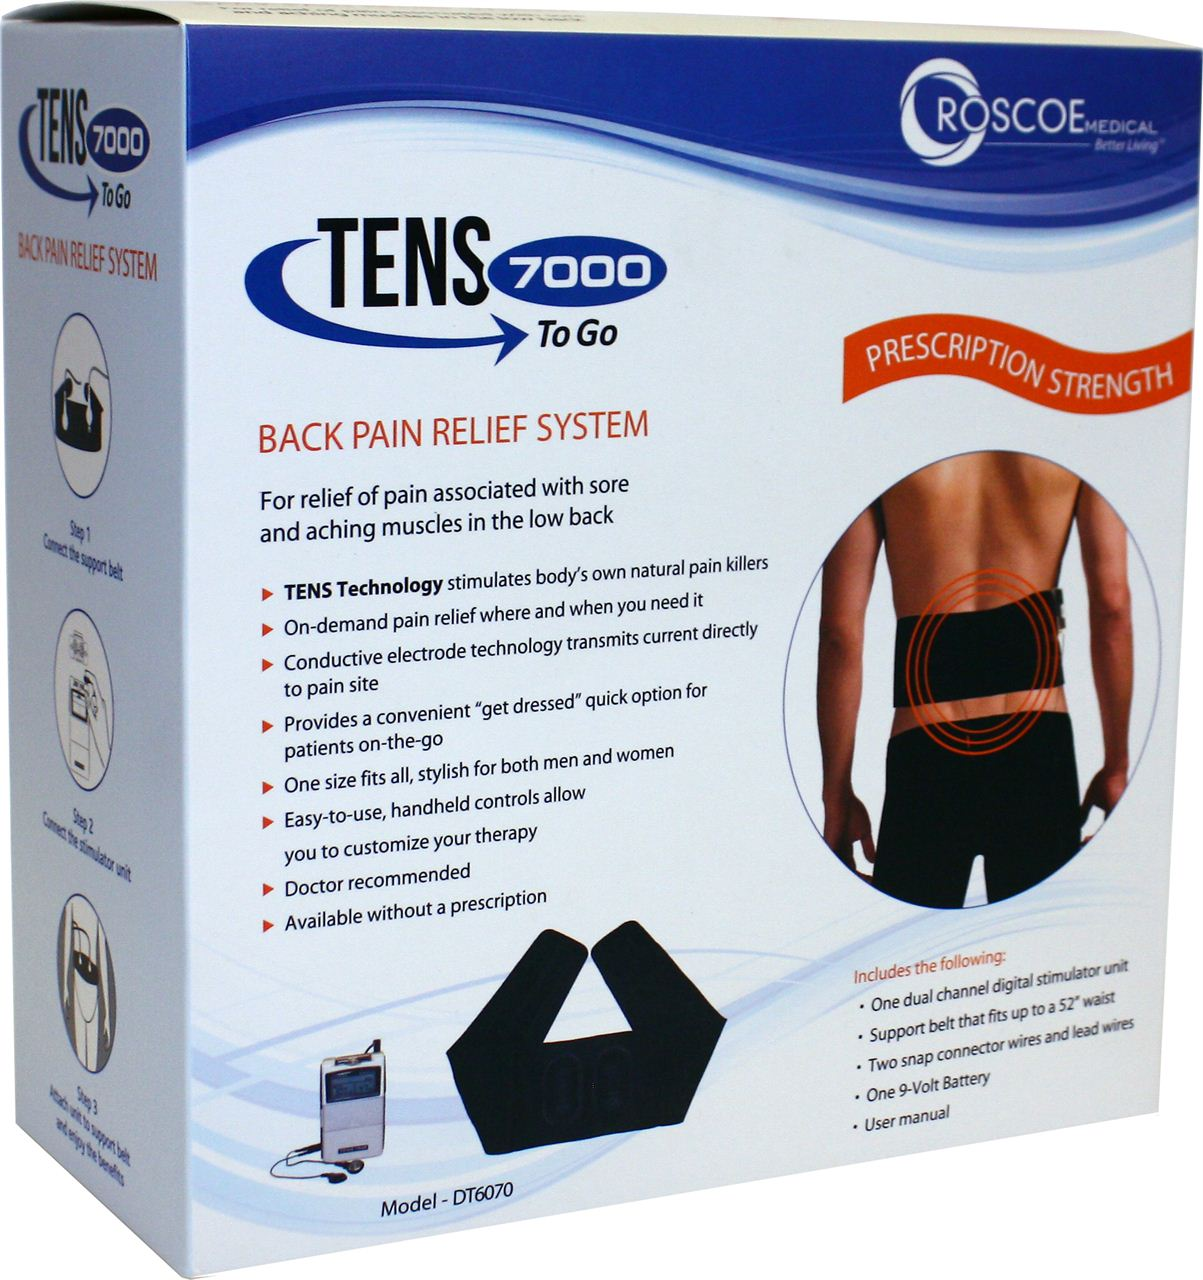 ... West. TENS 7000 to Go Back Pain Relief System - Home Wellness West